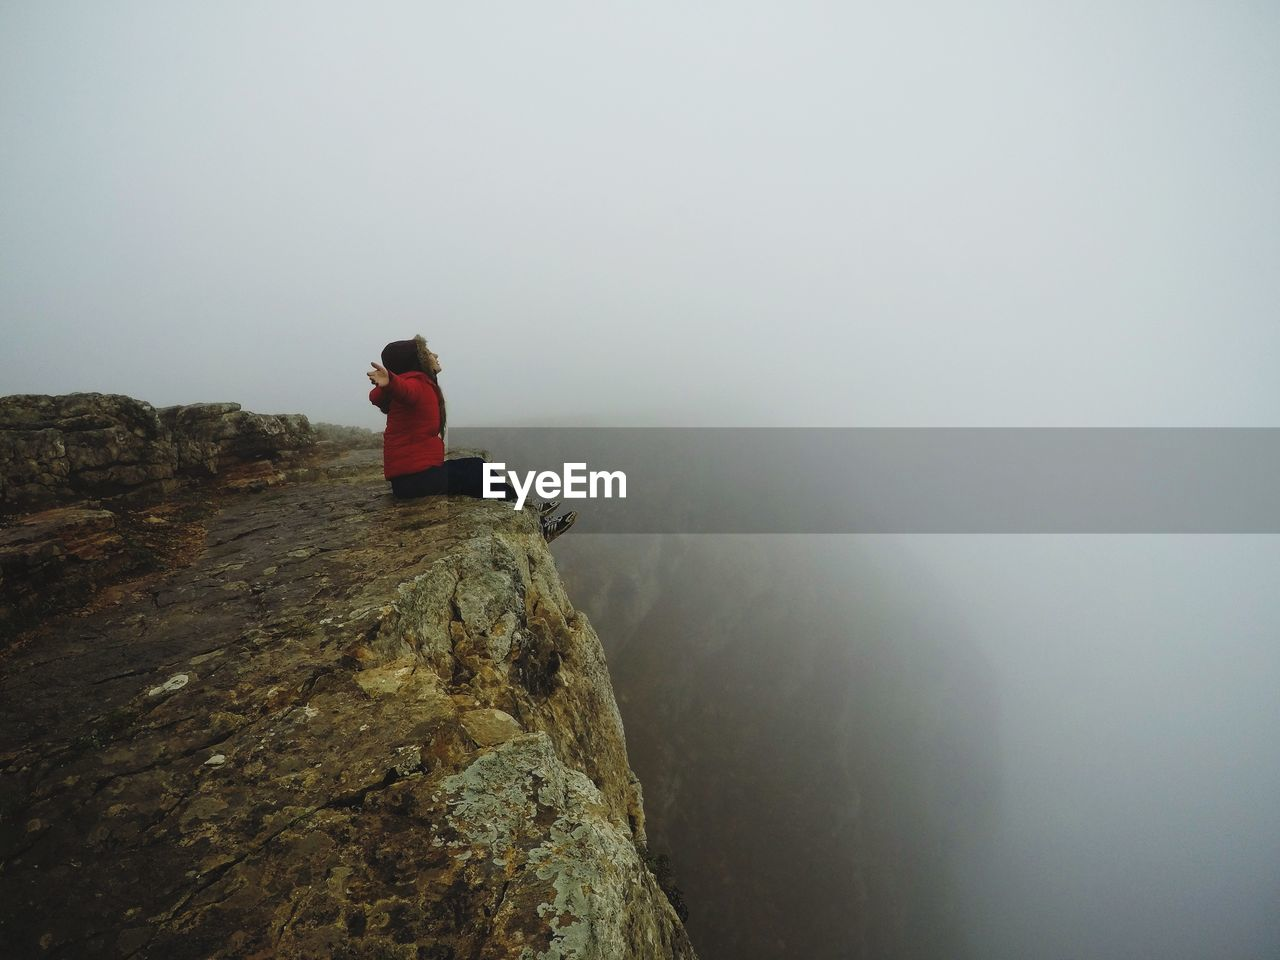 rock, rock - object, fog, solid, real people, sitting, leisure activity, lifestyles, one person, beauty in nature, nature, tranquility, adventure, mountain, sky, tranquil scene, scenics - nature, rock formation, vacations, outdoors, at the edge of, looking at view